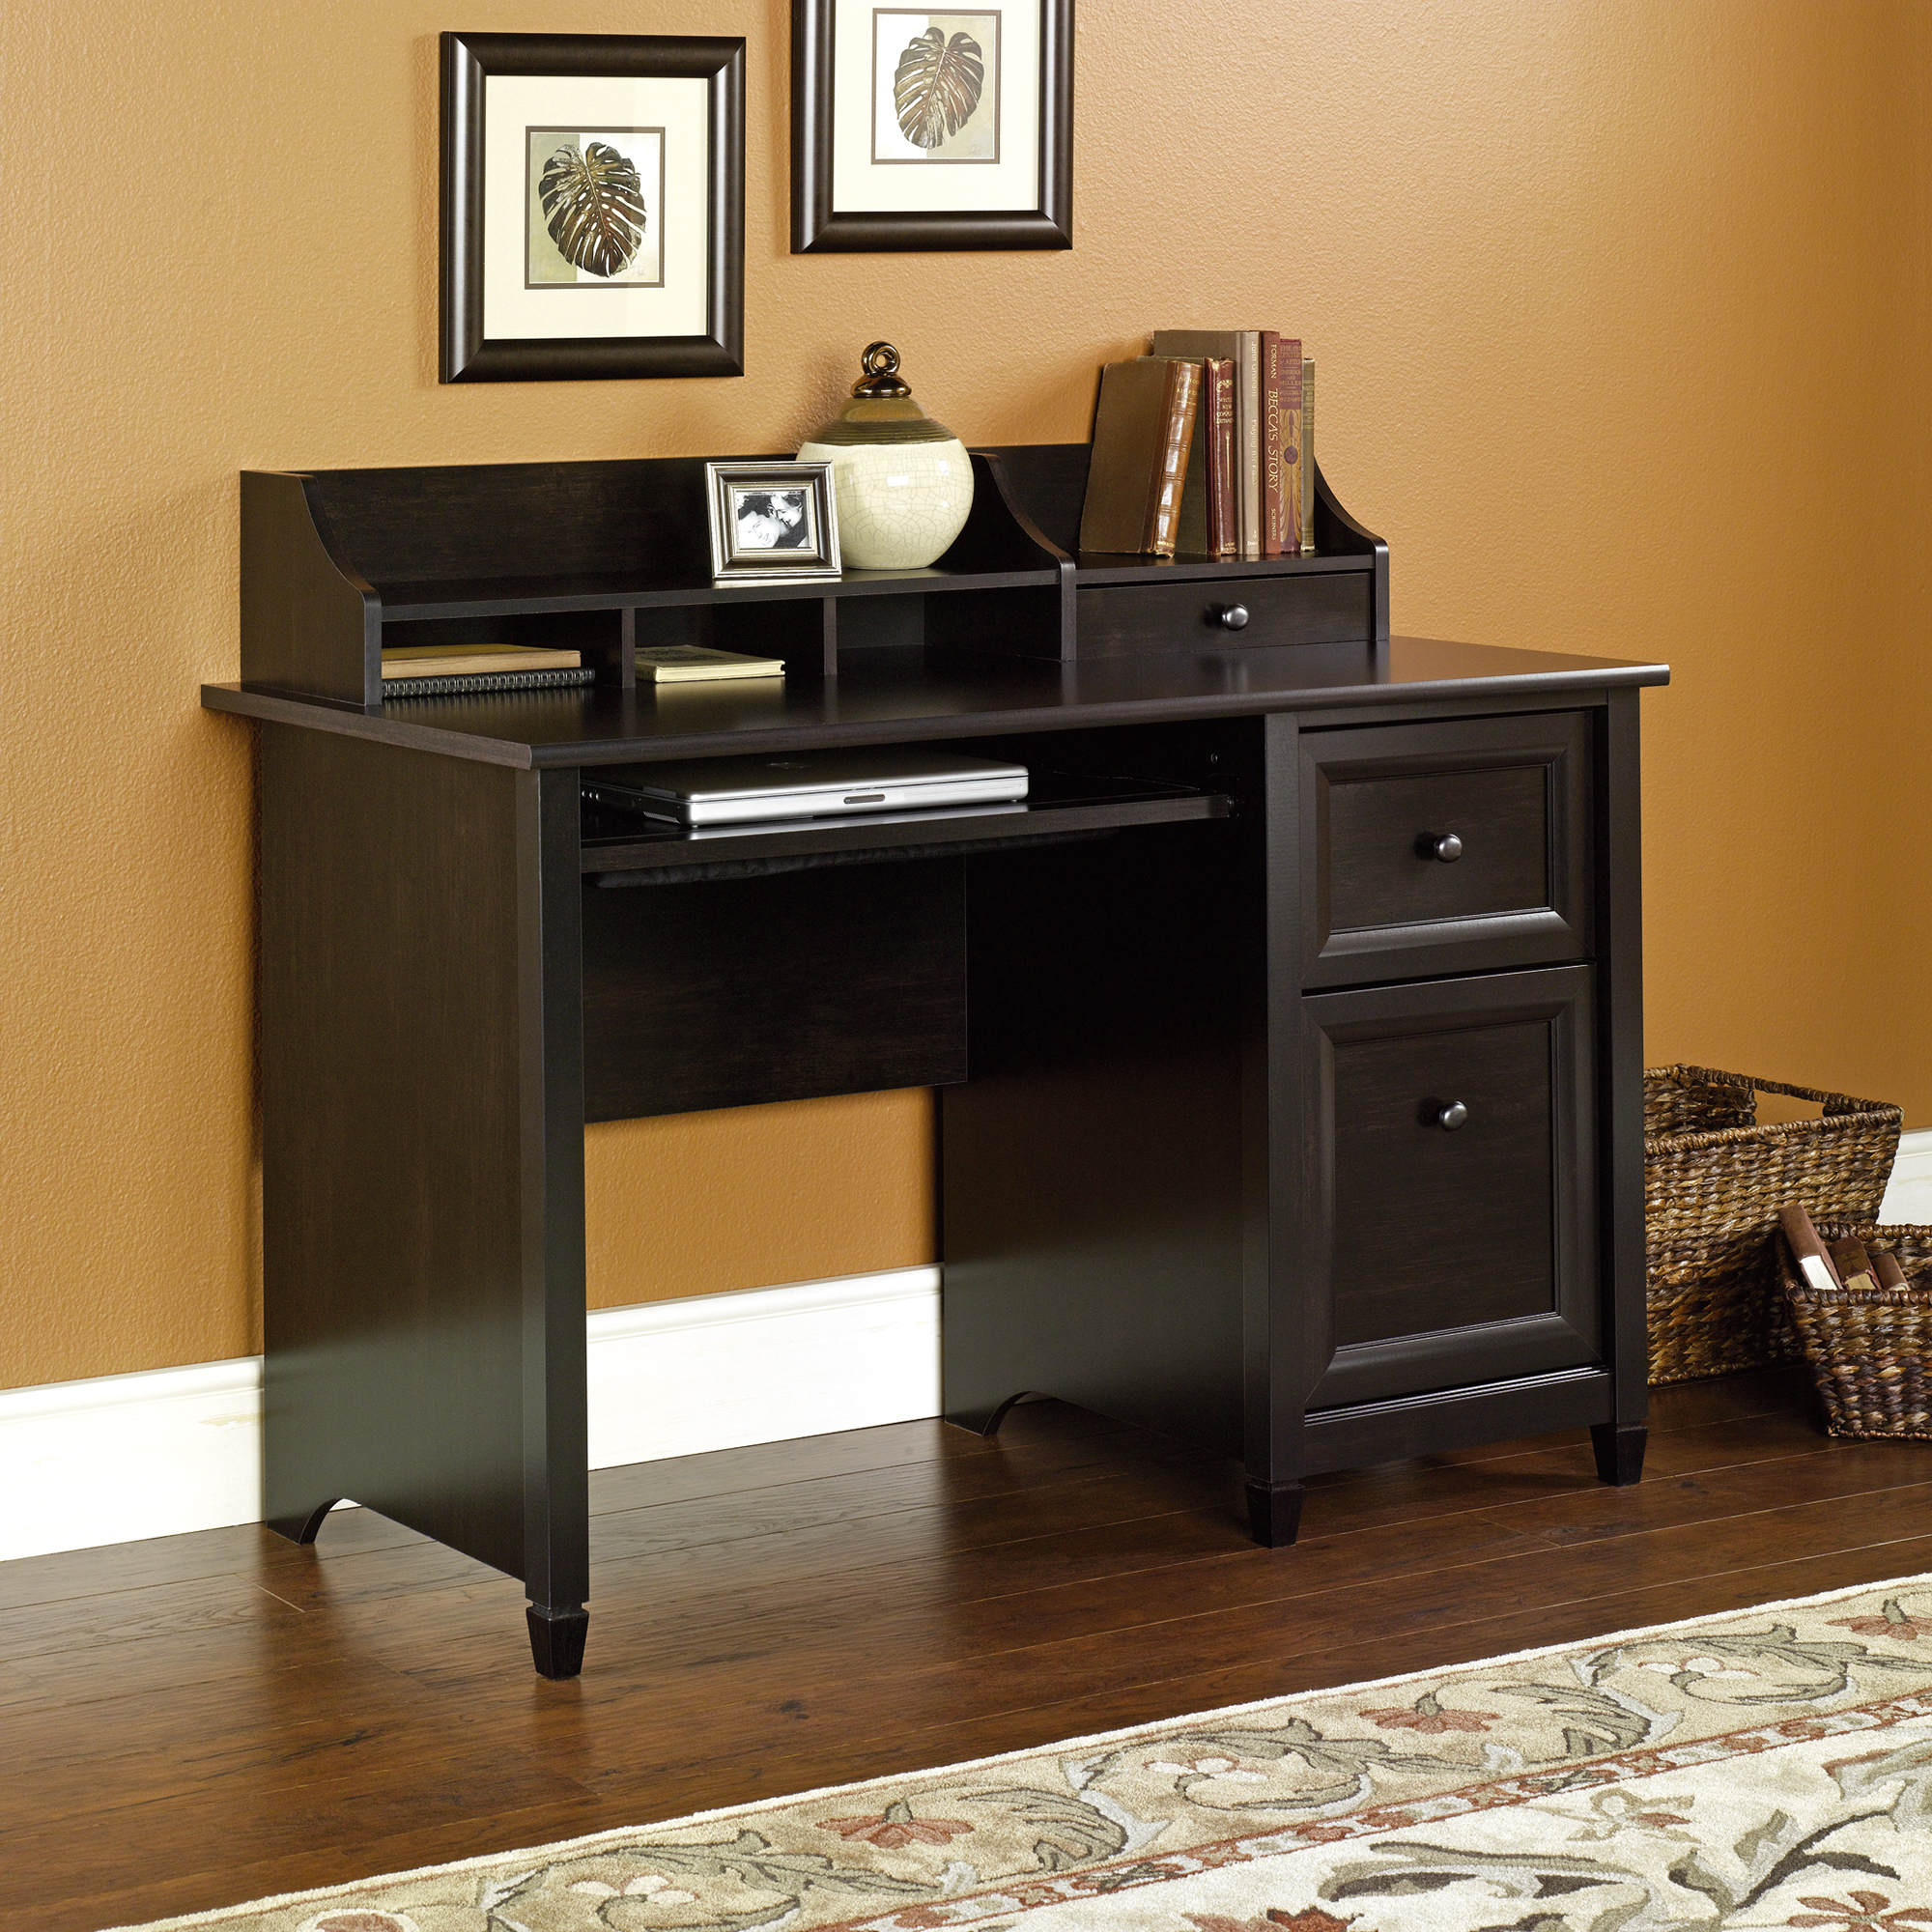 Sauder Cinnamon Cherry Computer Desk | Sauder Shoal Creek Computer Desk Dark Brown | Sauder Computer Desks